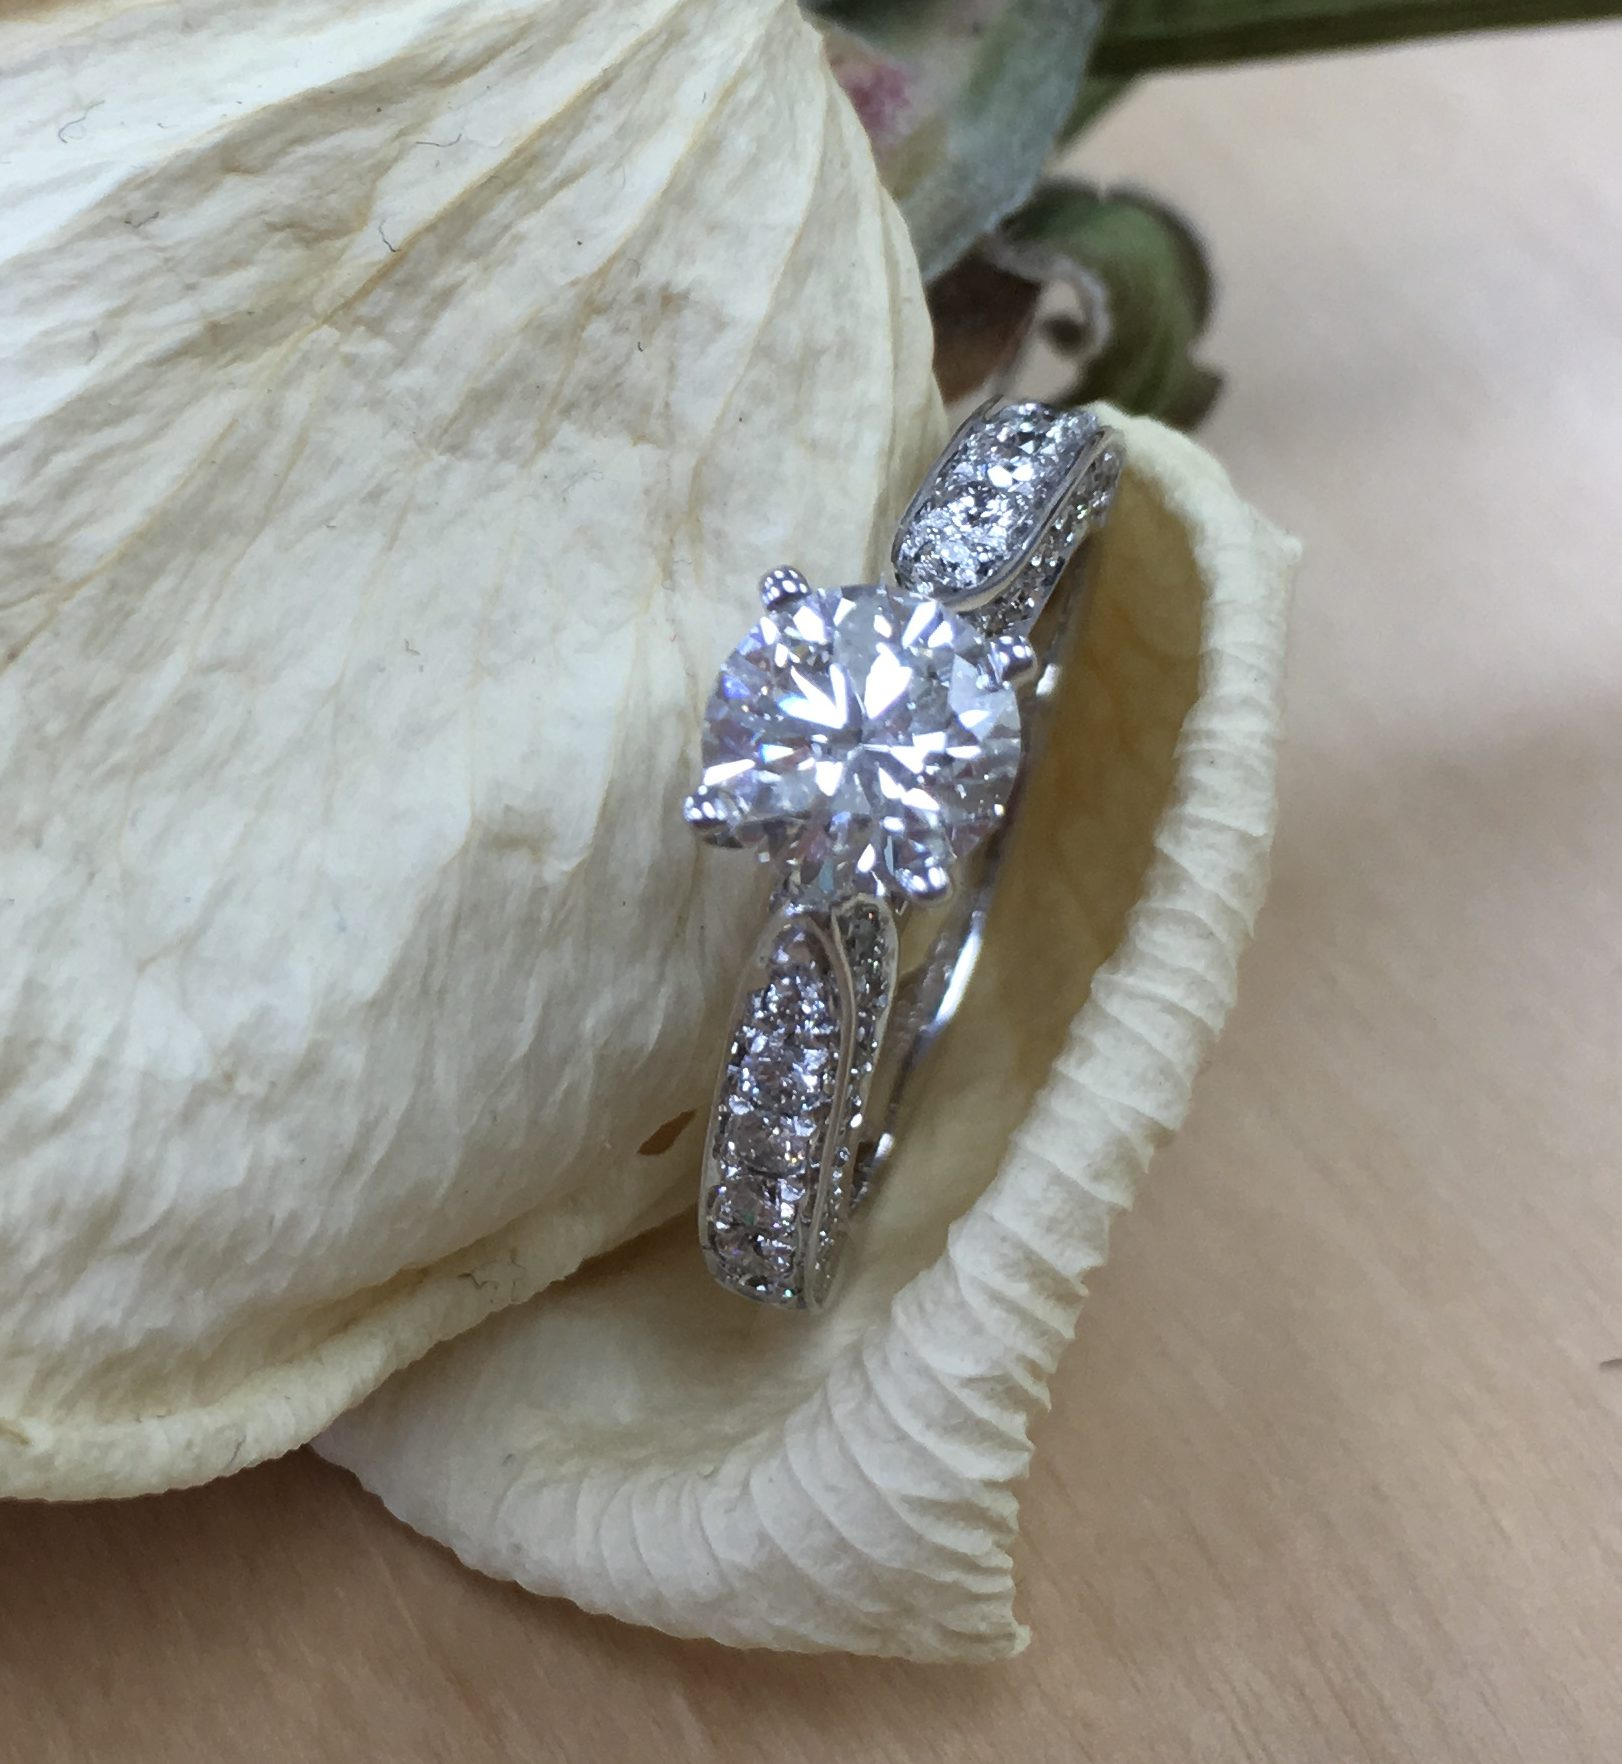 Customize your engagement ring